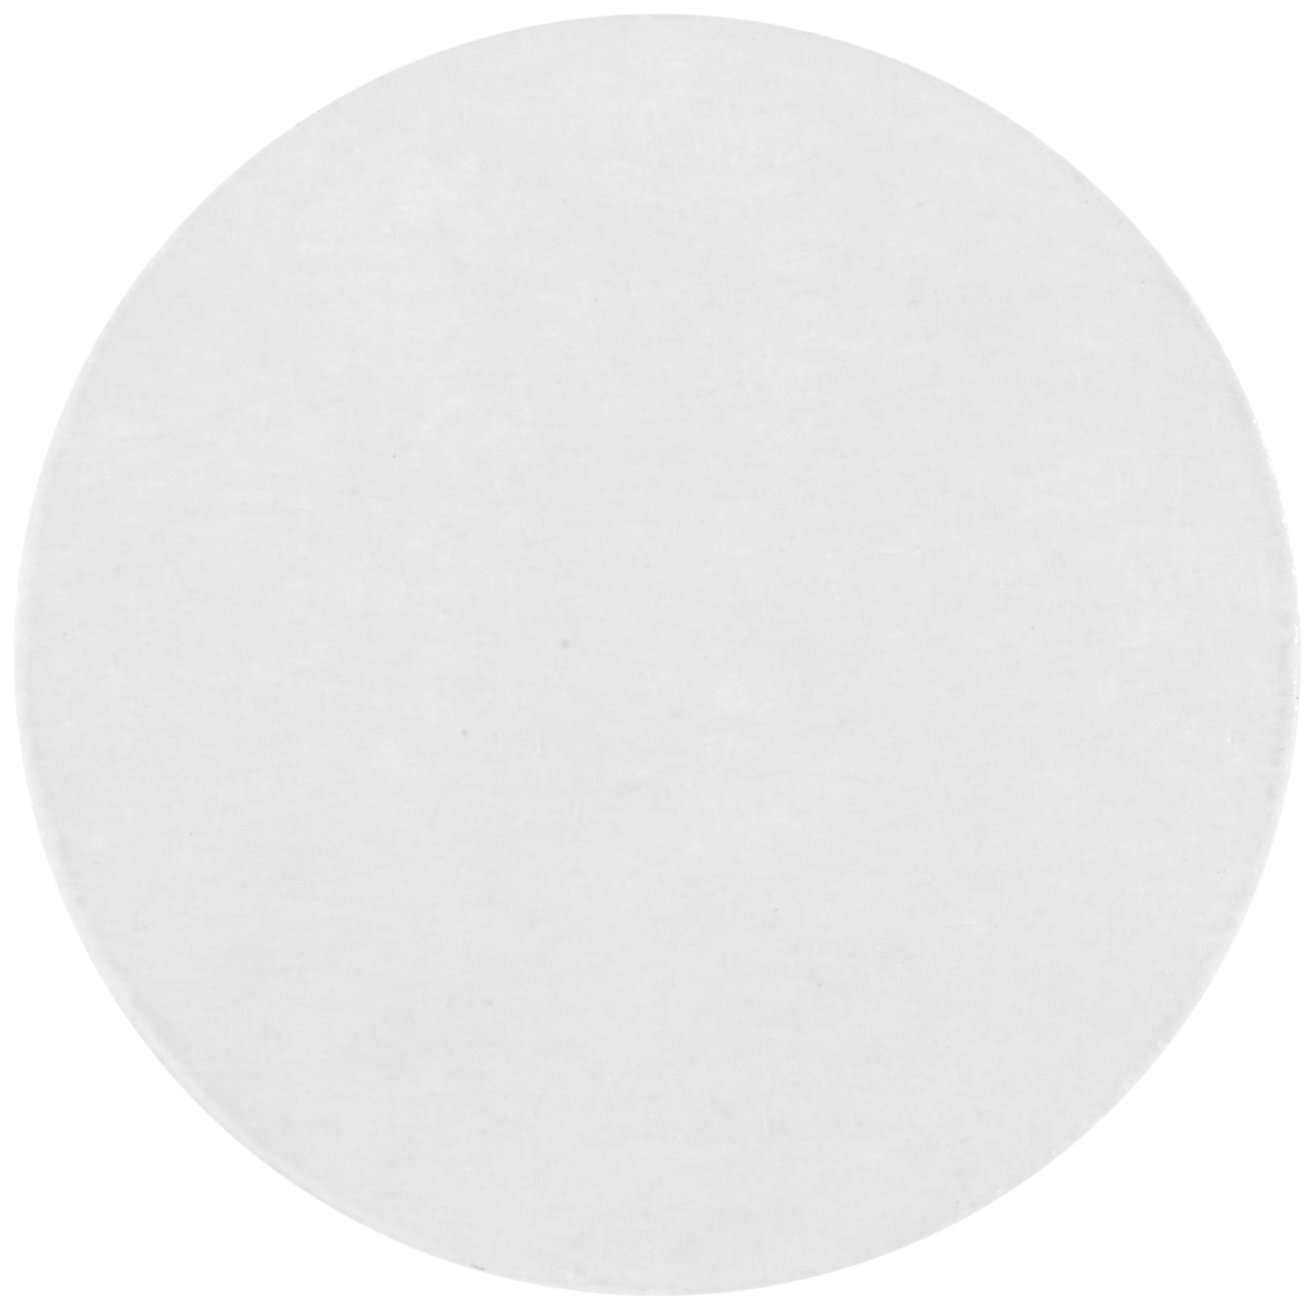 0.13 mm to 0.17 mm Circles Thickness 2 Item Length x 2 Item Width Fisher Scientific 12-545-80 Glass Cover 12 mm Size 2 Item Length x 2 Item Width